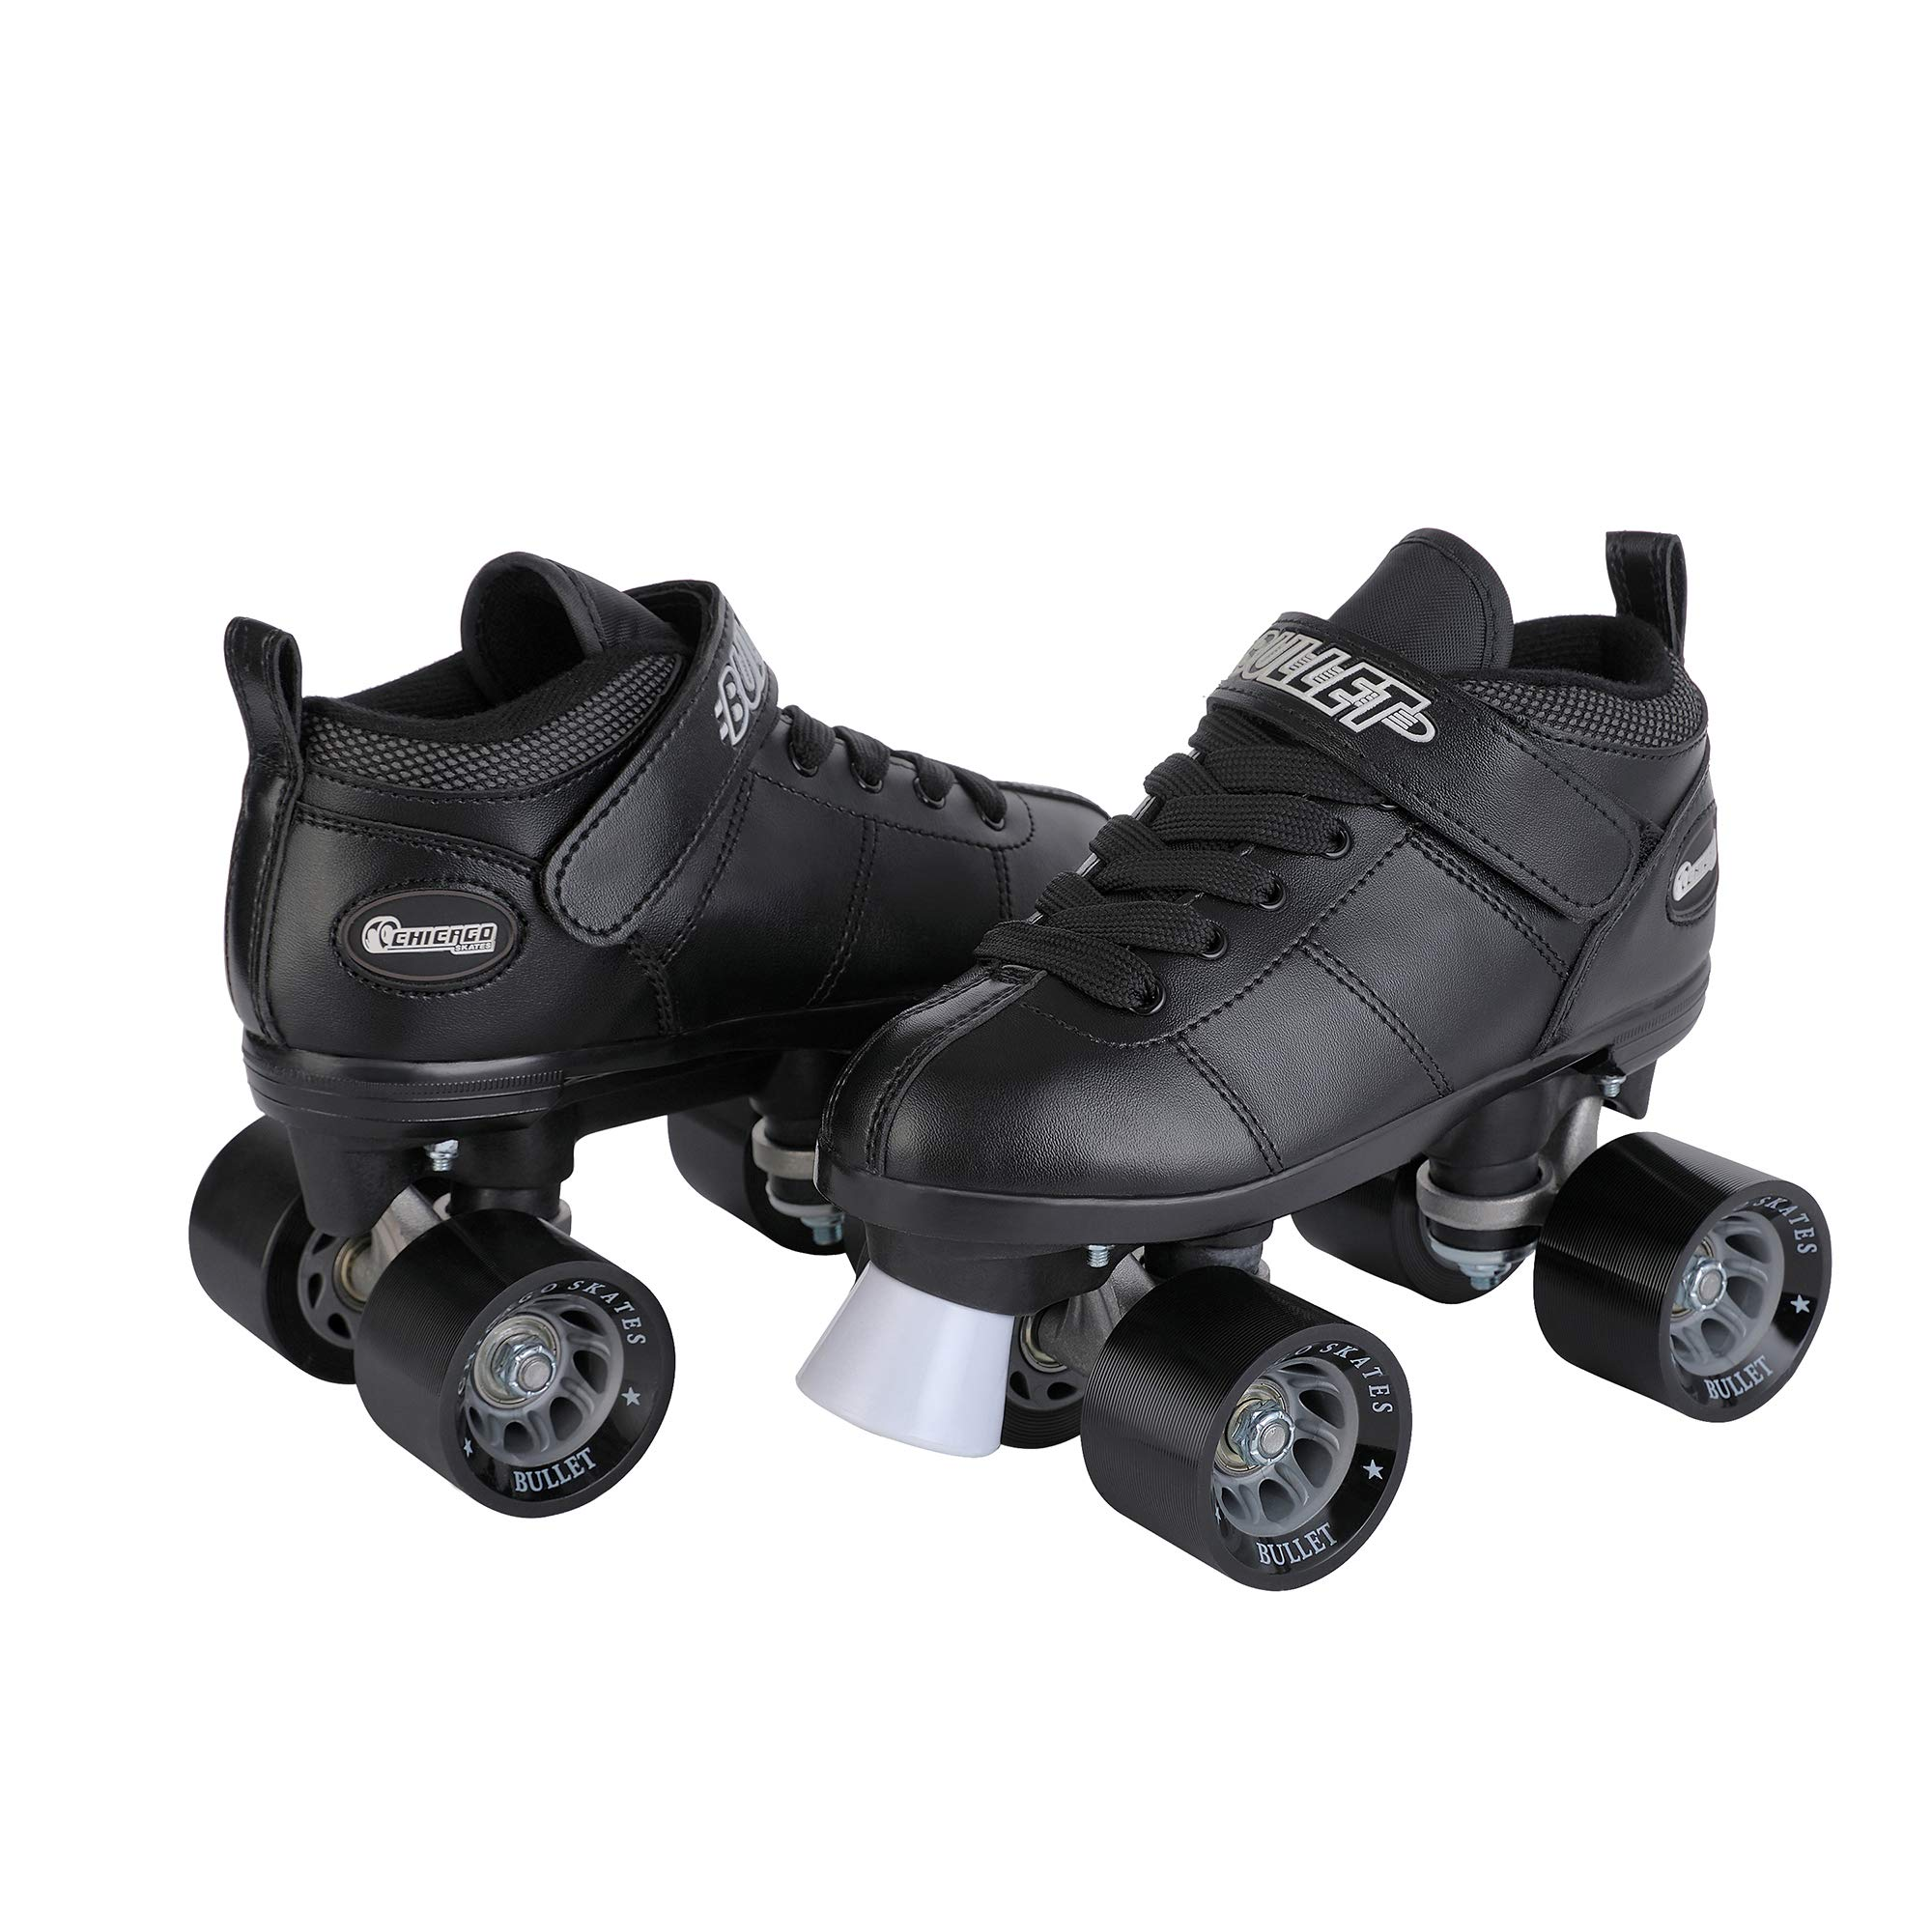 Free clipart of boy wobbling on roller skates. Best rated in speed